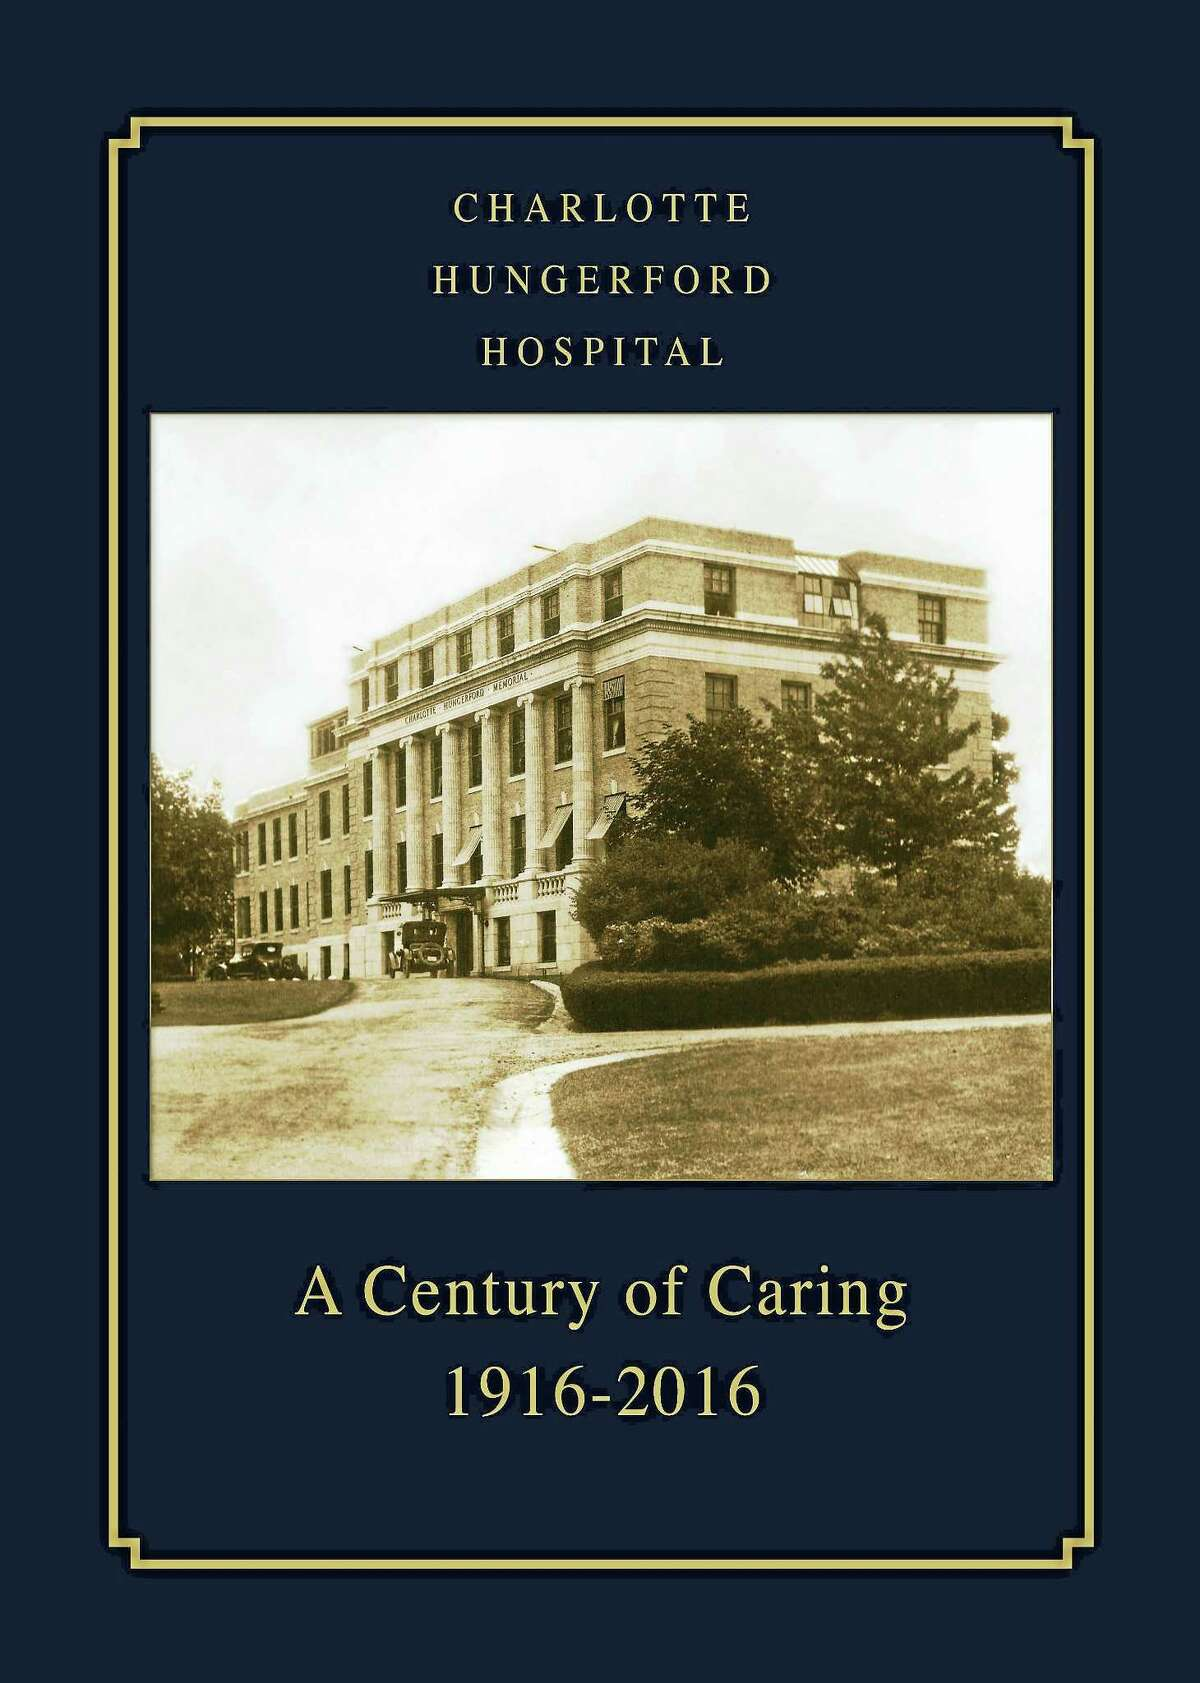 Contributed photoCharlotte Hungerford Hospital (CHH) turned 100 years old this past October, and the hospital has published a commemorative book that chronicles the people, places and events of the last century.